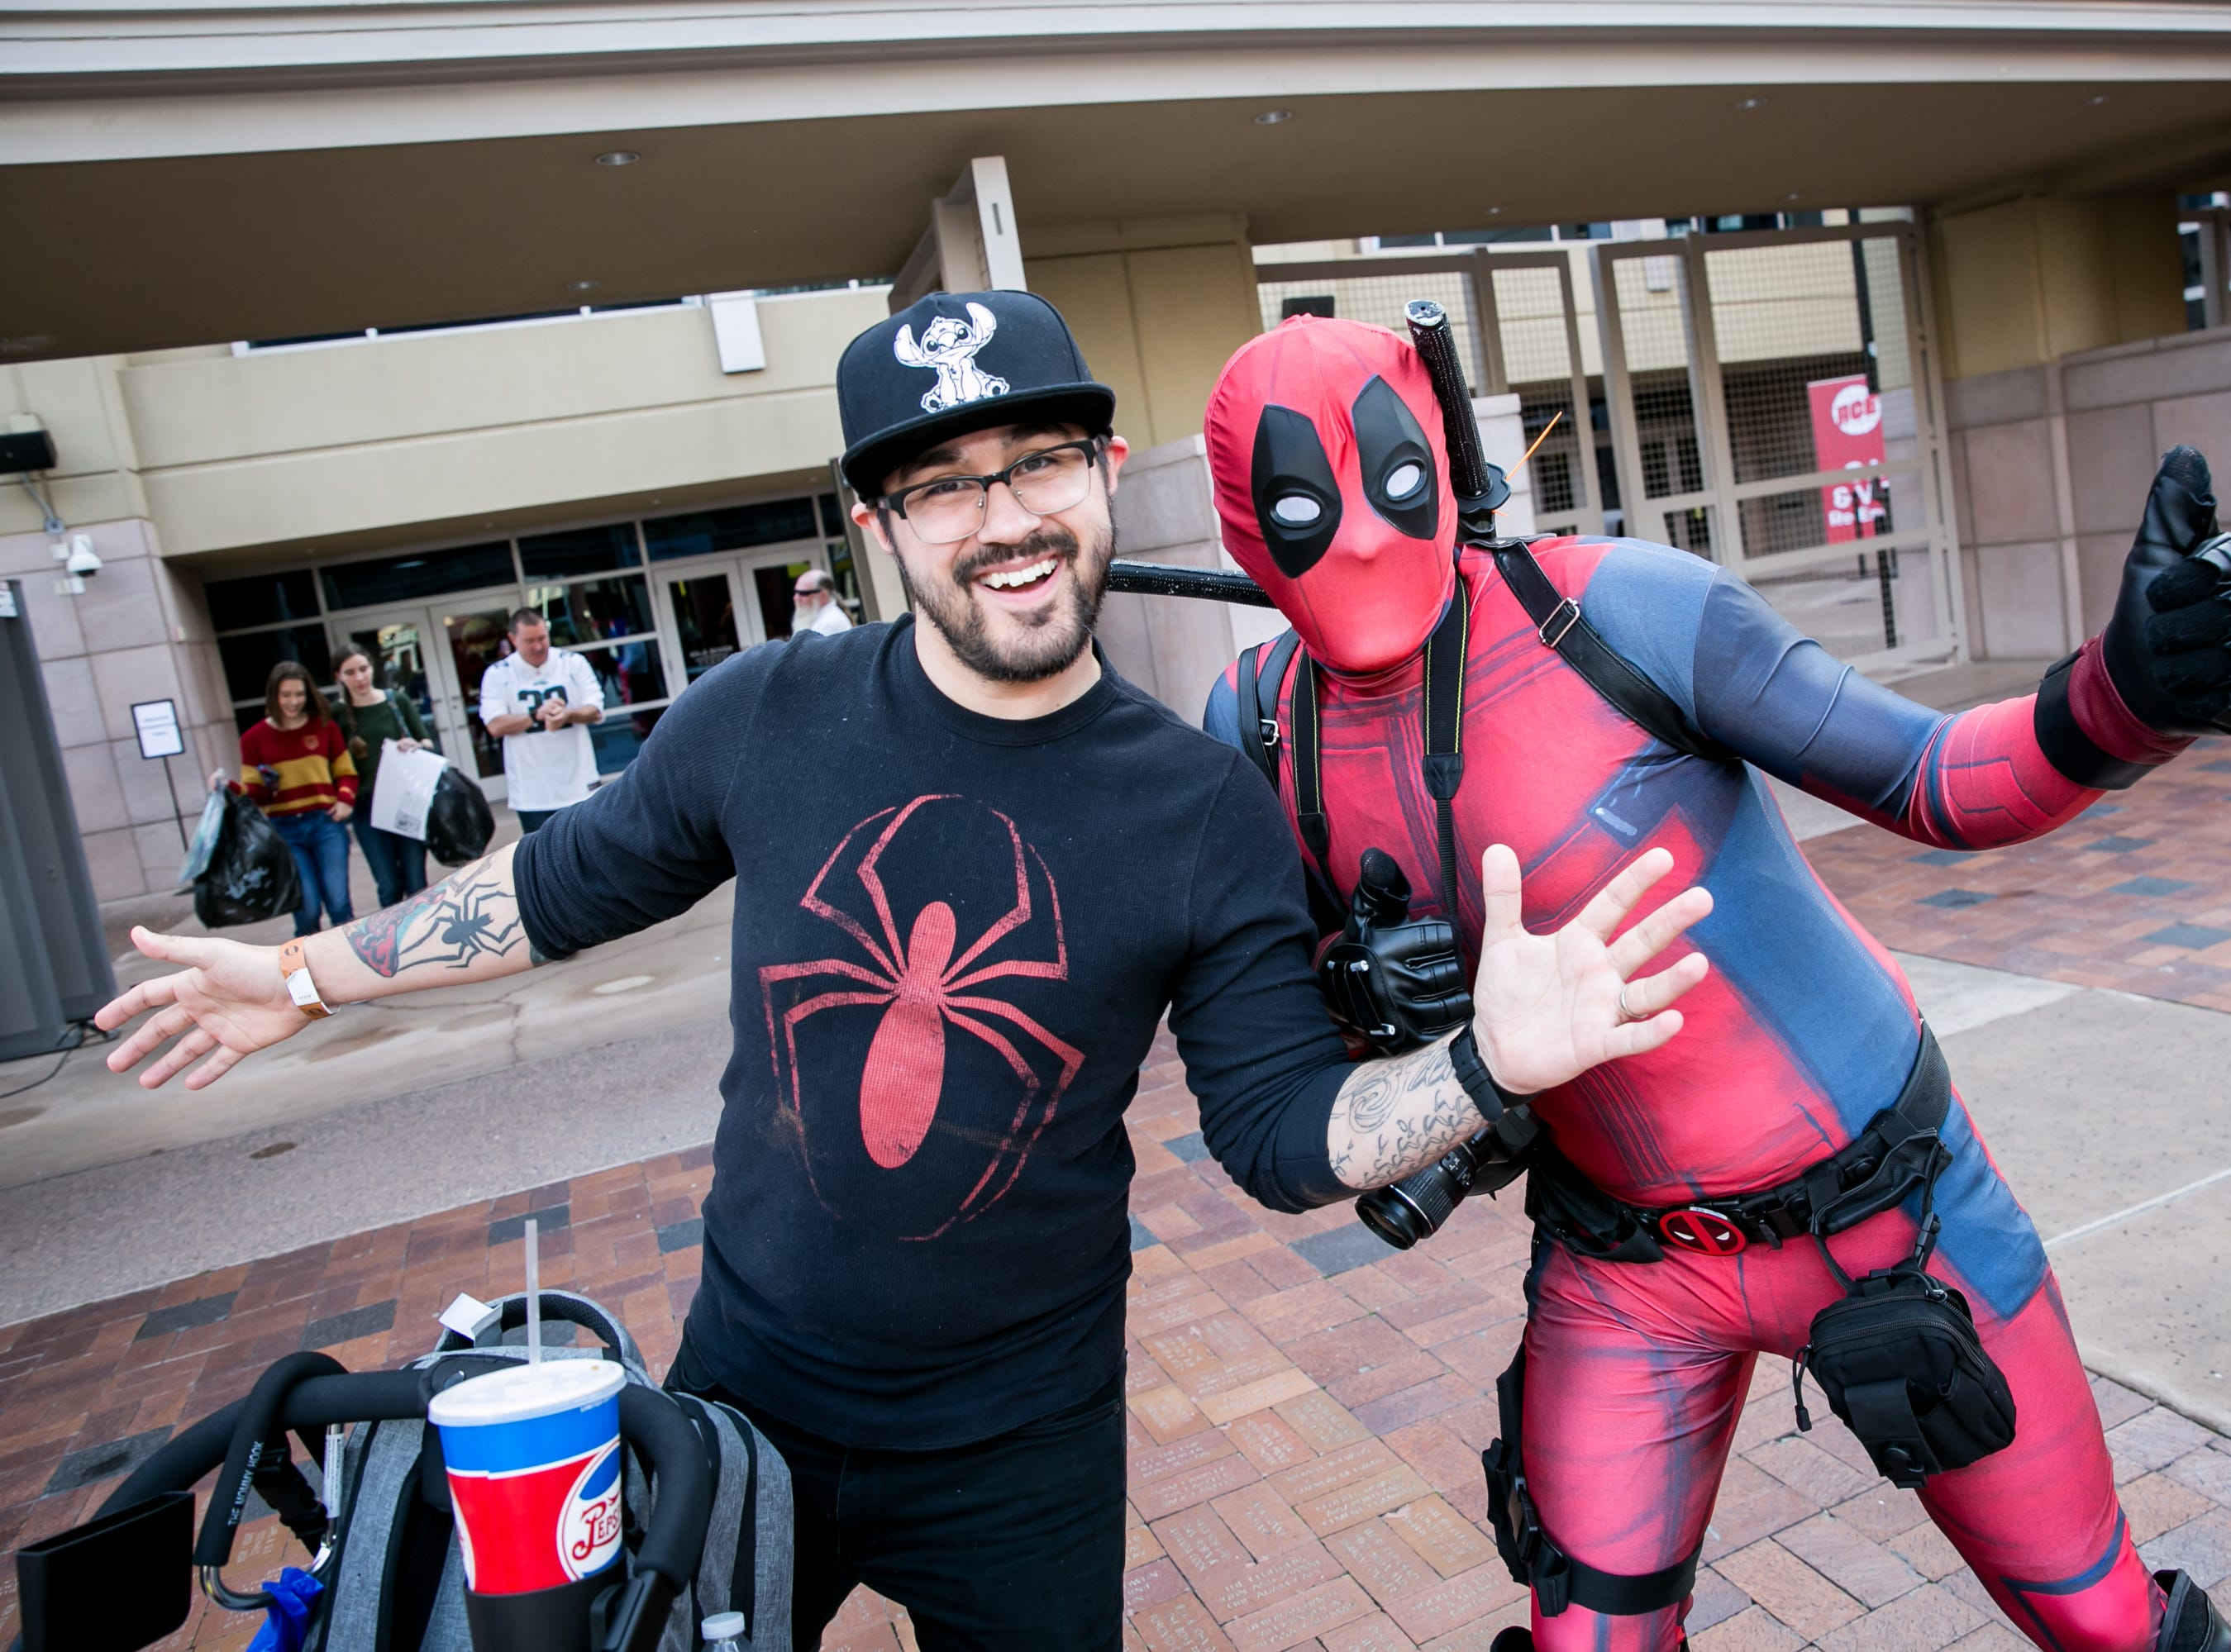 Spider-Man and Deadpool were the best of friends during Ace Comic Con at Gila River Arena in Glendale on Sunday, Jan. 13, 2019.